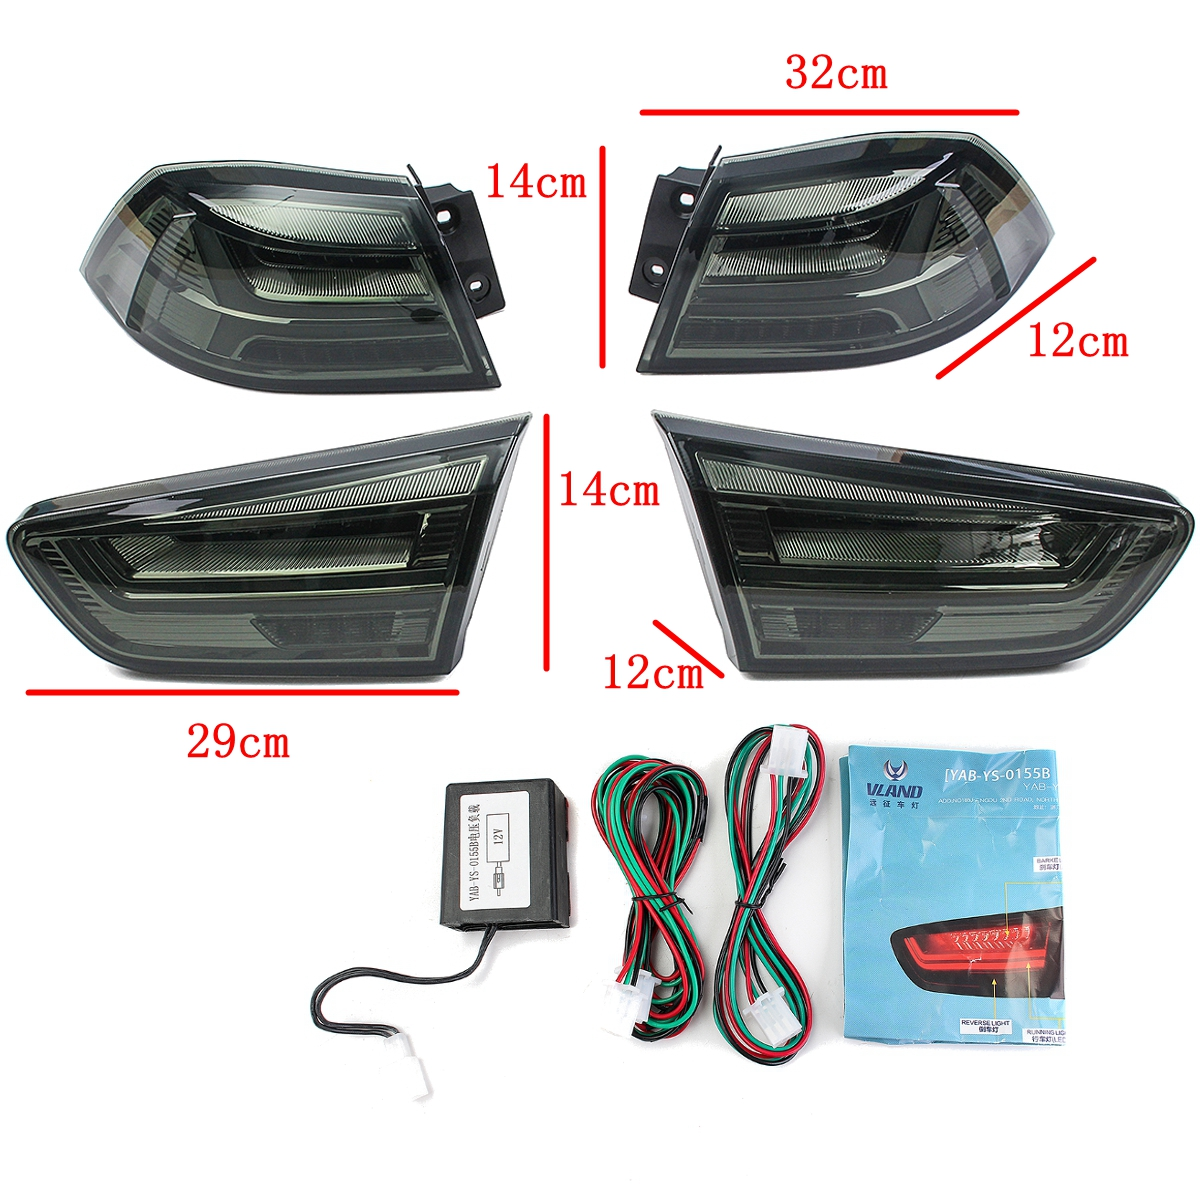 Pair 12V Car LED Rear Tail Light Turn Signal Lamp for Mitsubishi Lancer / EVO x 2008-2017